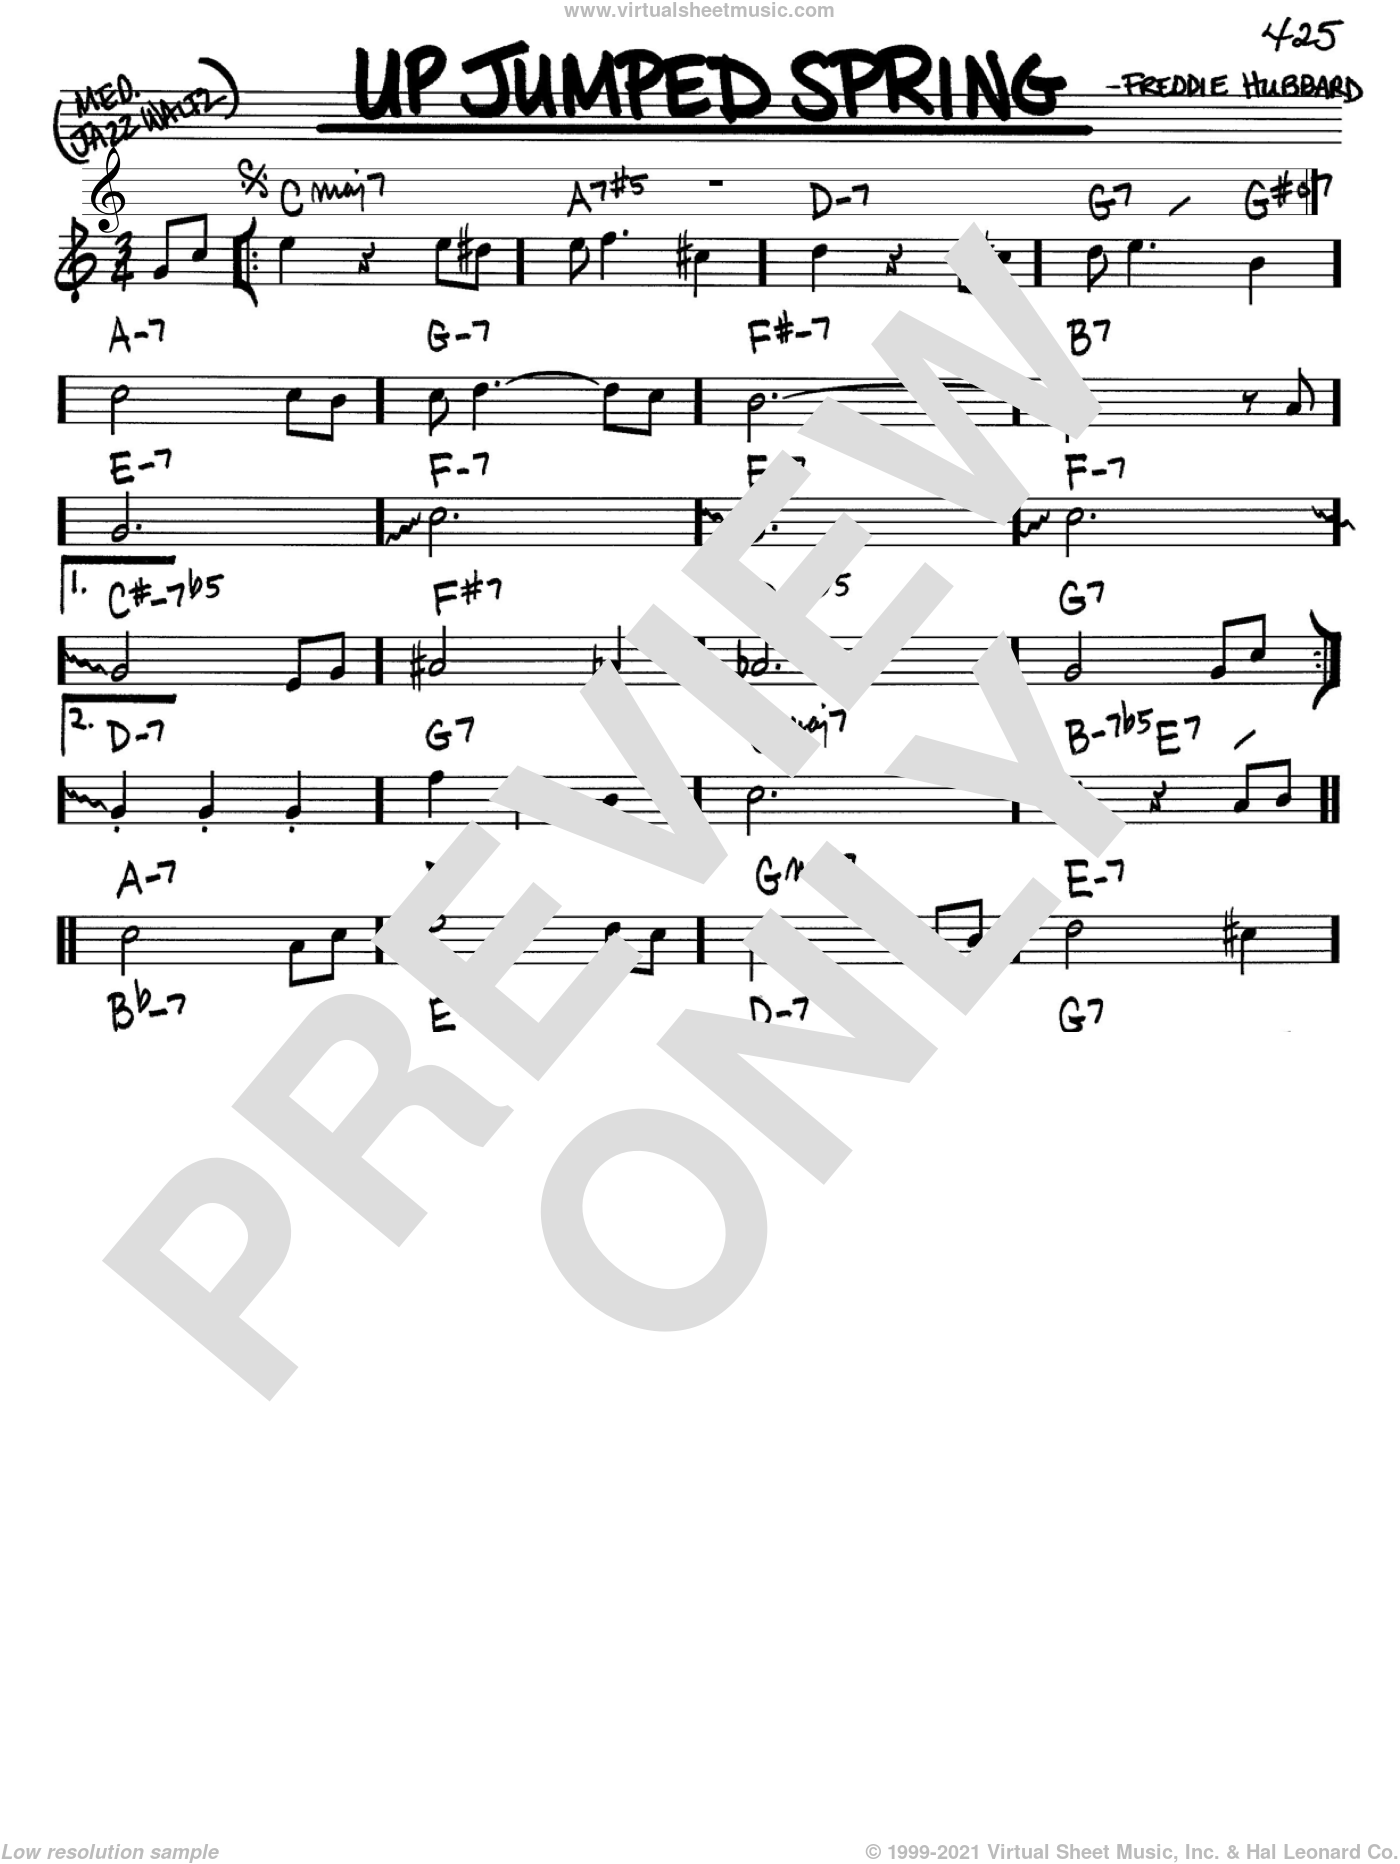 Up Jumped Spring sheet music for voice and other instruments (Bb) by Freddie Hubbard. Score Image Preview.